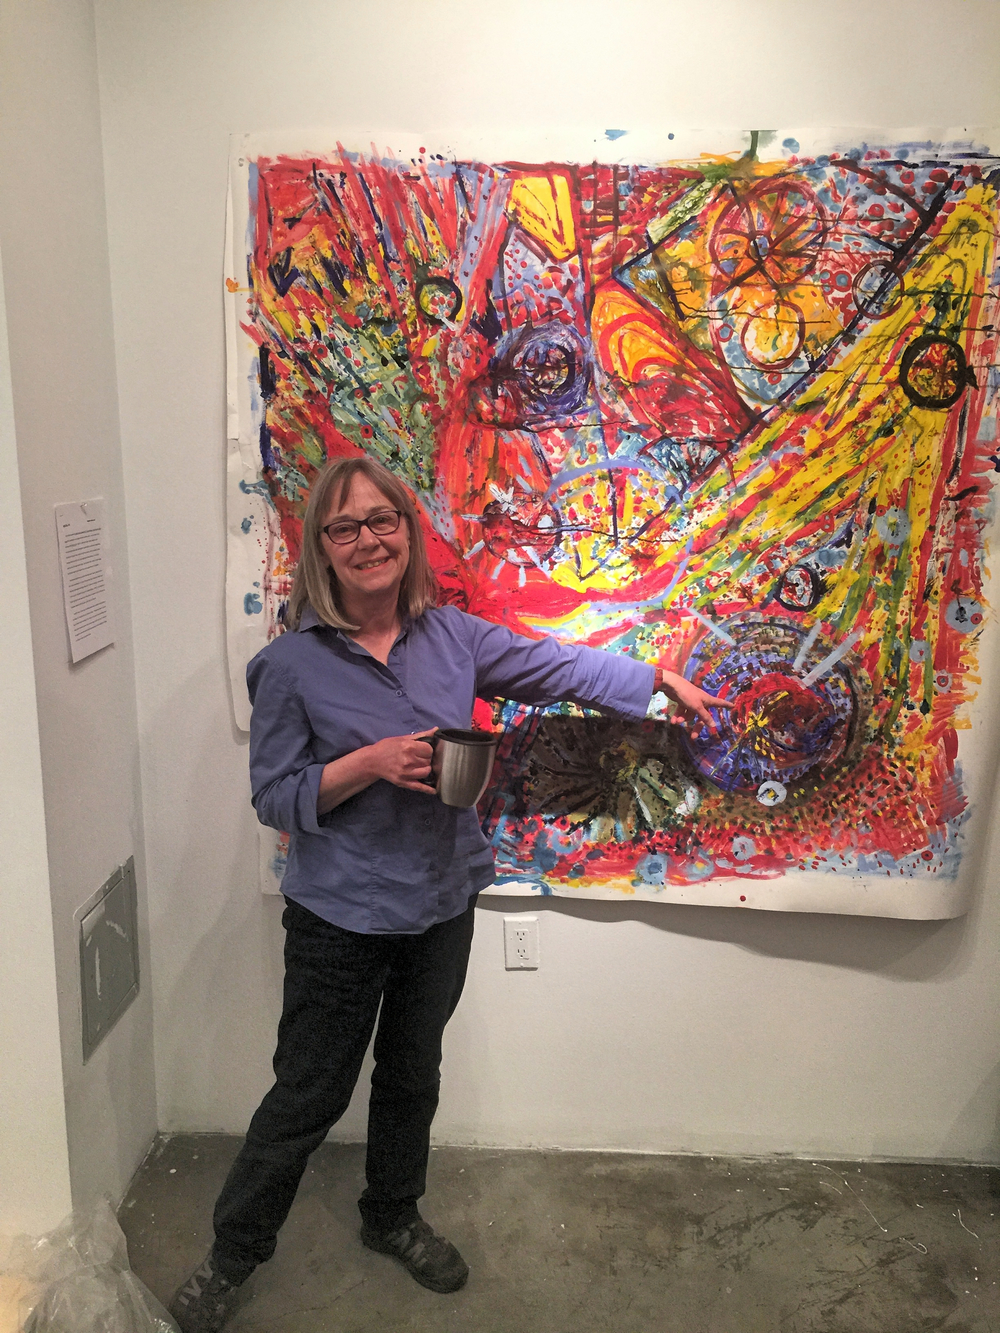 Here is Margaret standing in front of her painting at KPU that is in conversation with her assigned artist Kerstin Bratsch.